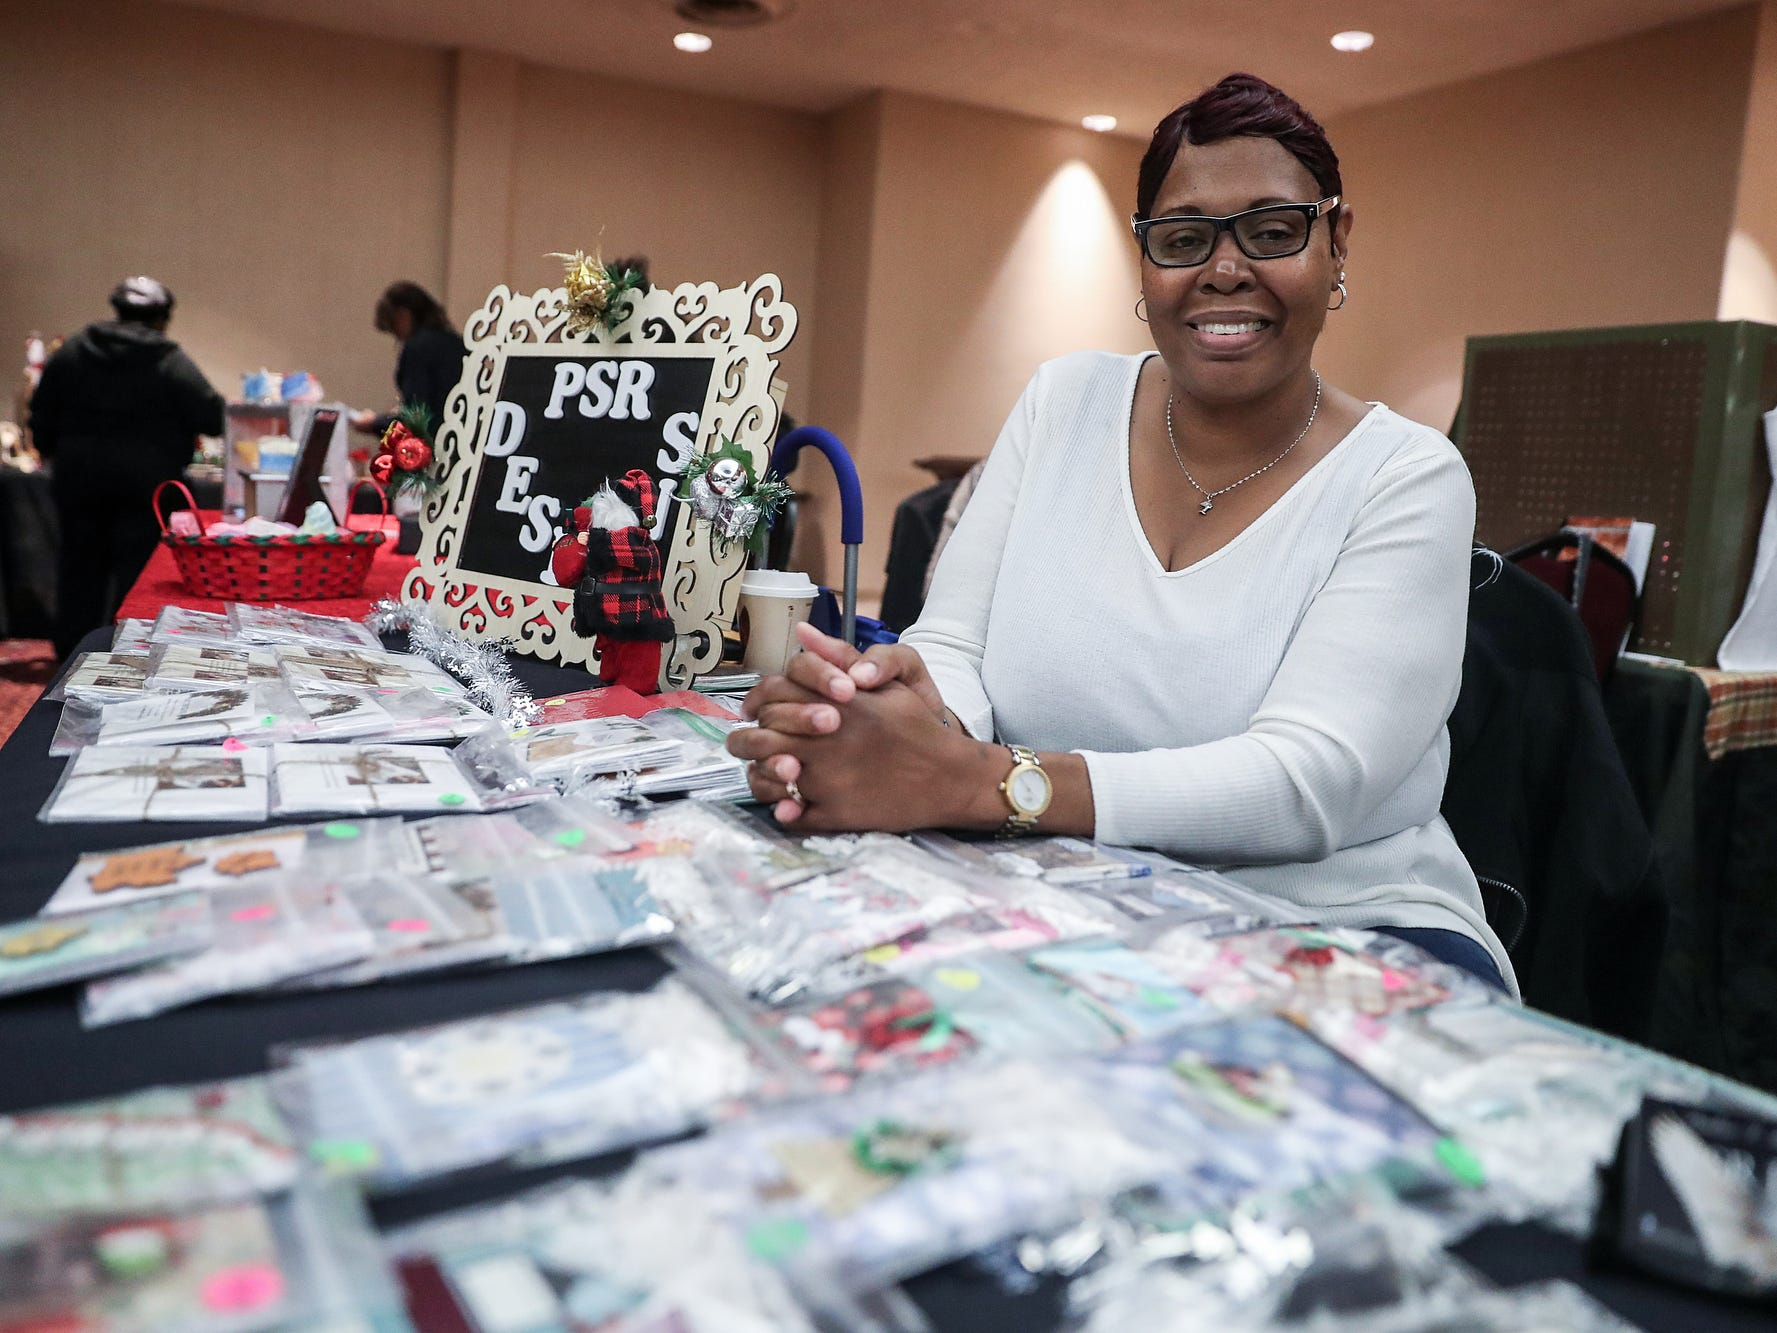 Pauline Ray sells hand-designed notebooks and notepads at a market showcasing more than 65 women and minority-owned small businesses at the Murat Shrine Temple in Indianapolis, Saturday, Nov. 24, 2018. The fifth annual event is part of Small Business Saturday, launched nationally by American Express eight years ago to help independently owned businesses bounce back from the recession.